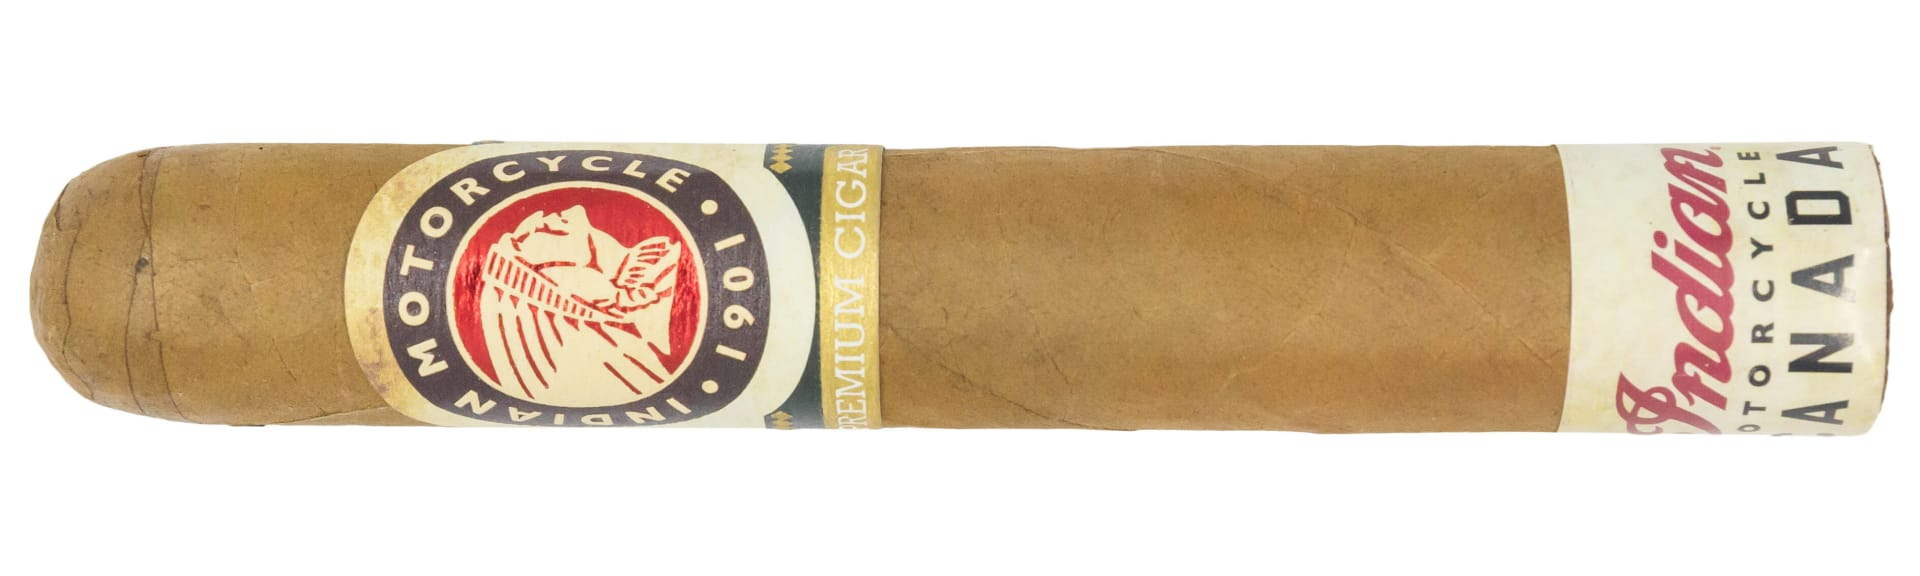 Blind Cigar Review: Indian Motorcycle | Connecticut Shade Robusto Featured Image